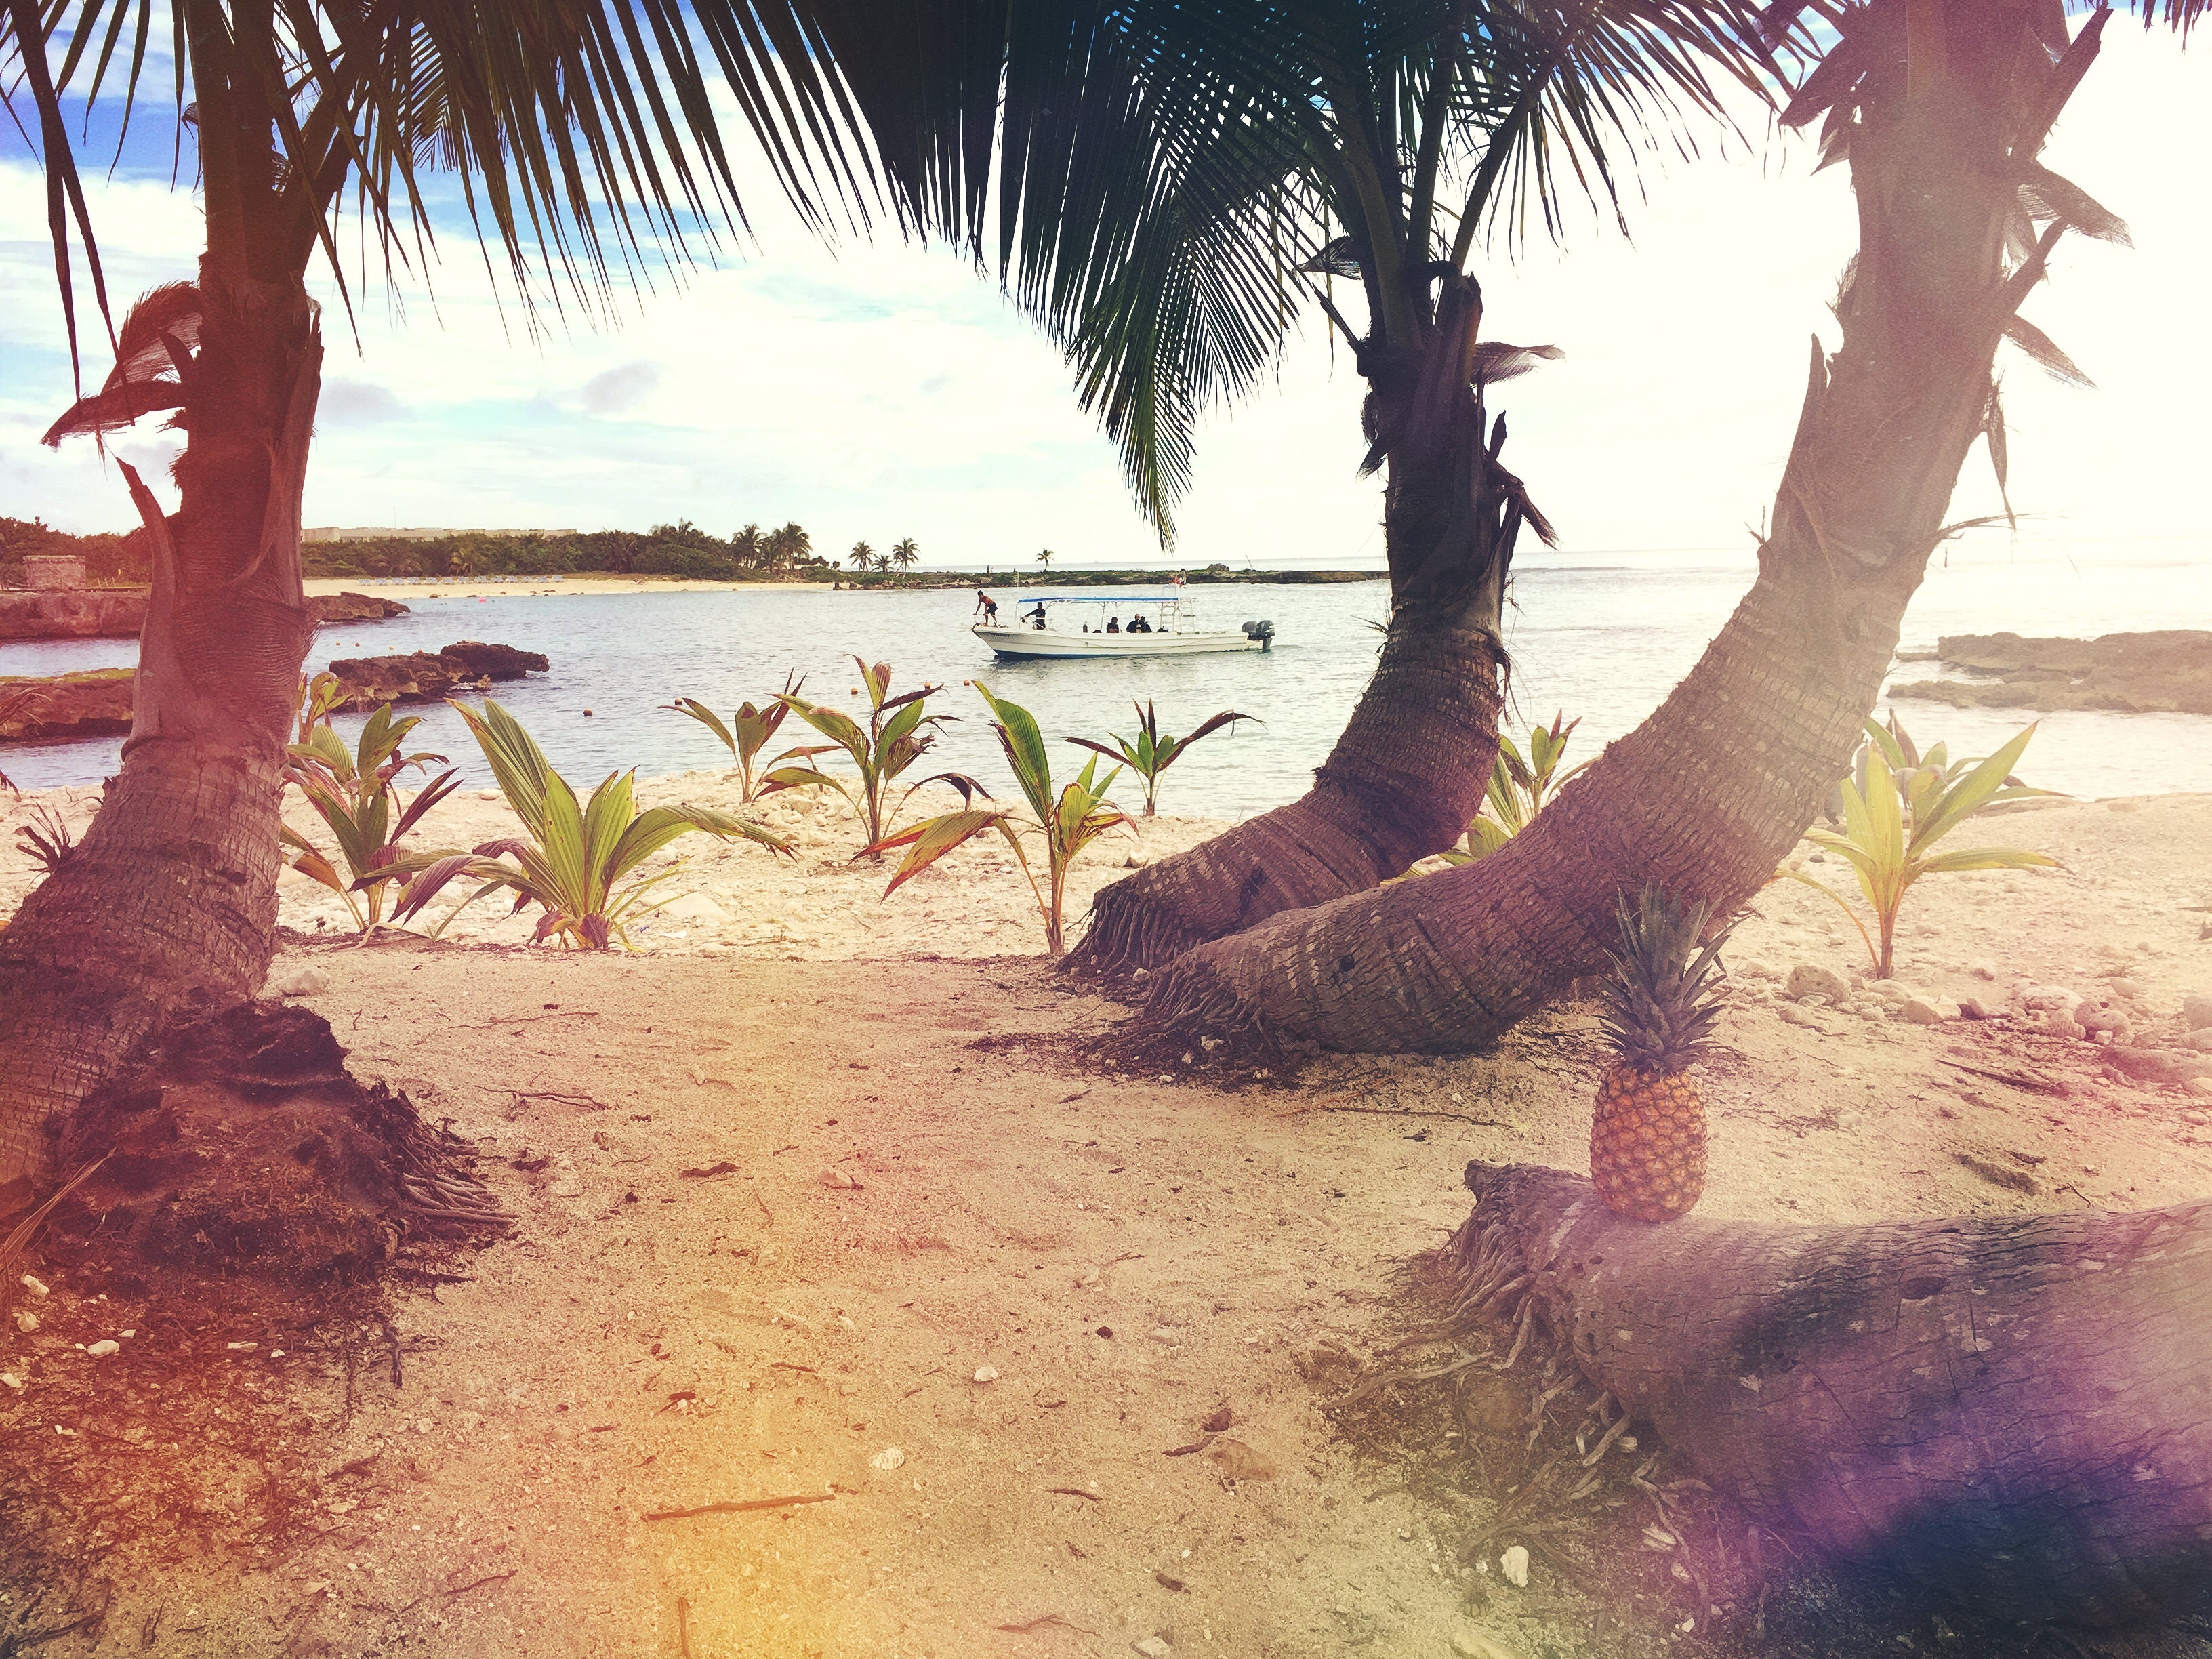 3 Coconut Trees Near the Beach Shore Line during Day Time, Seaside, Seashore, Sand, Shore, HQ Photo